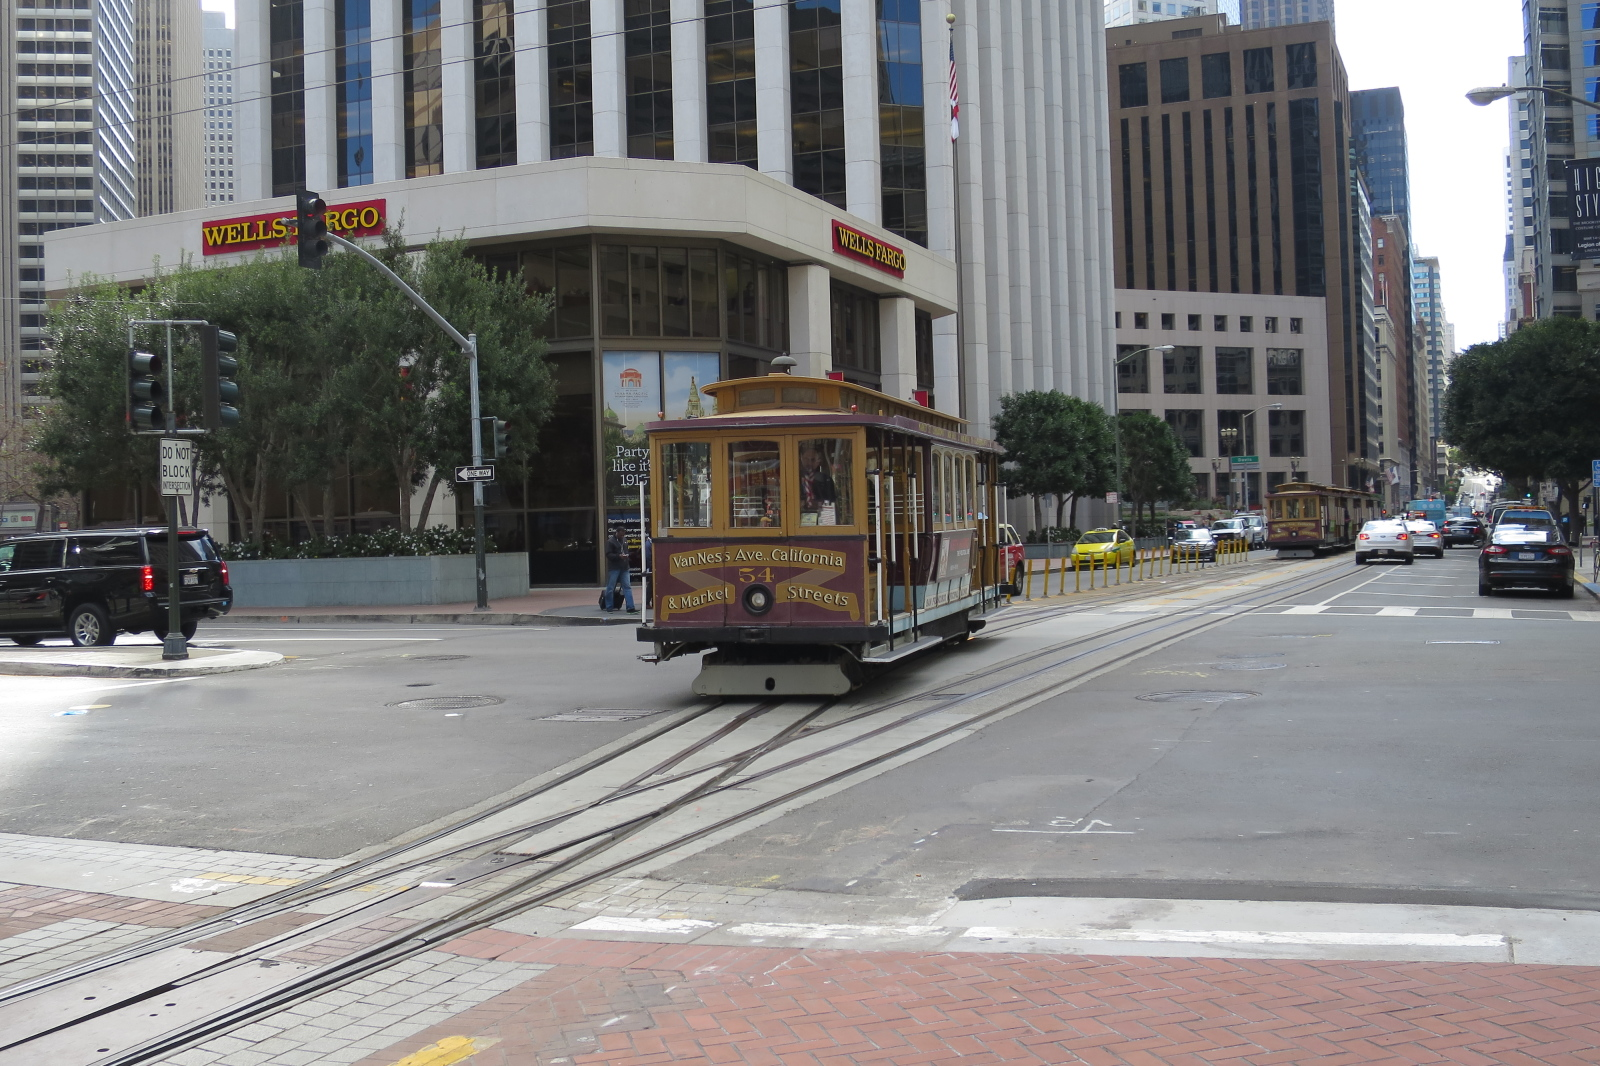 sanfrancisco-36-back_in_san_francisco_its_finally_time_for_a_cable_car_ride-20150302_143254_s120_img_3182_down1600